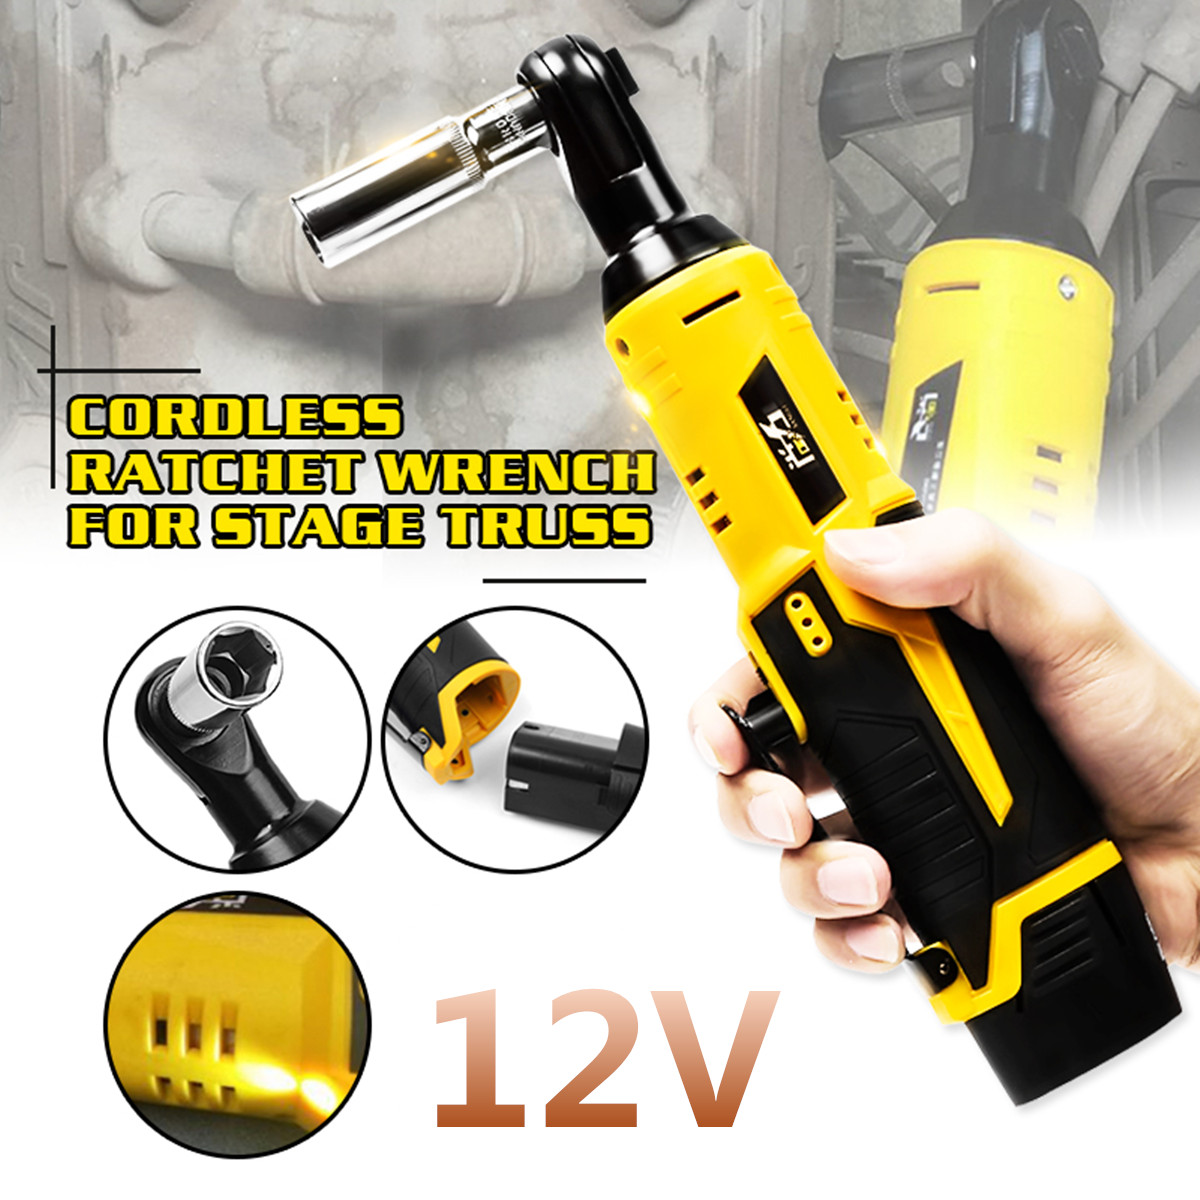 12V 35NM LED Cordless Electric Ratchet Wrench 3/8 inch Rechargeable Right Angle Wrench Tools+Li-ion Battery for Car Repair Tool12V 35NM LED Cordless Electric Ratchet Wrench 3/8 inch Rechargeable Right Angle Wrench Tools+Li-ion Battery for Car Repair Tool